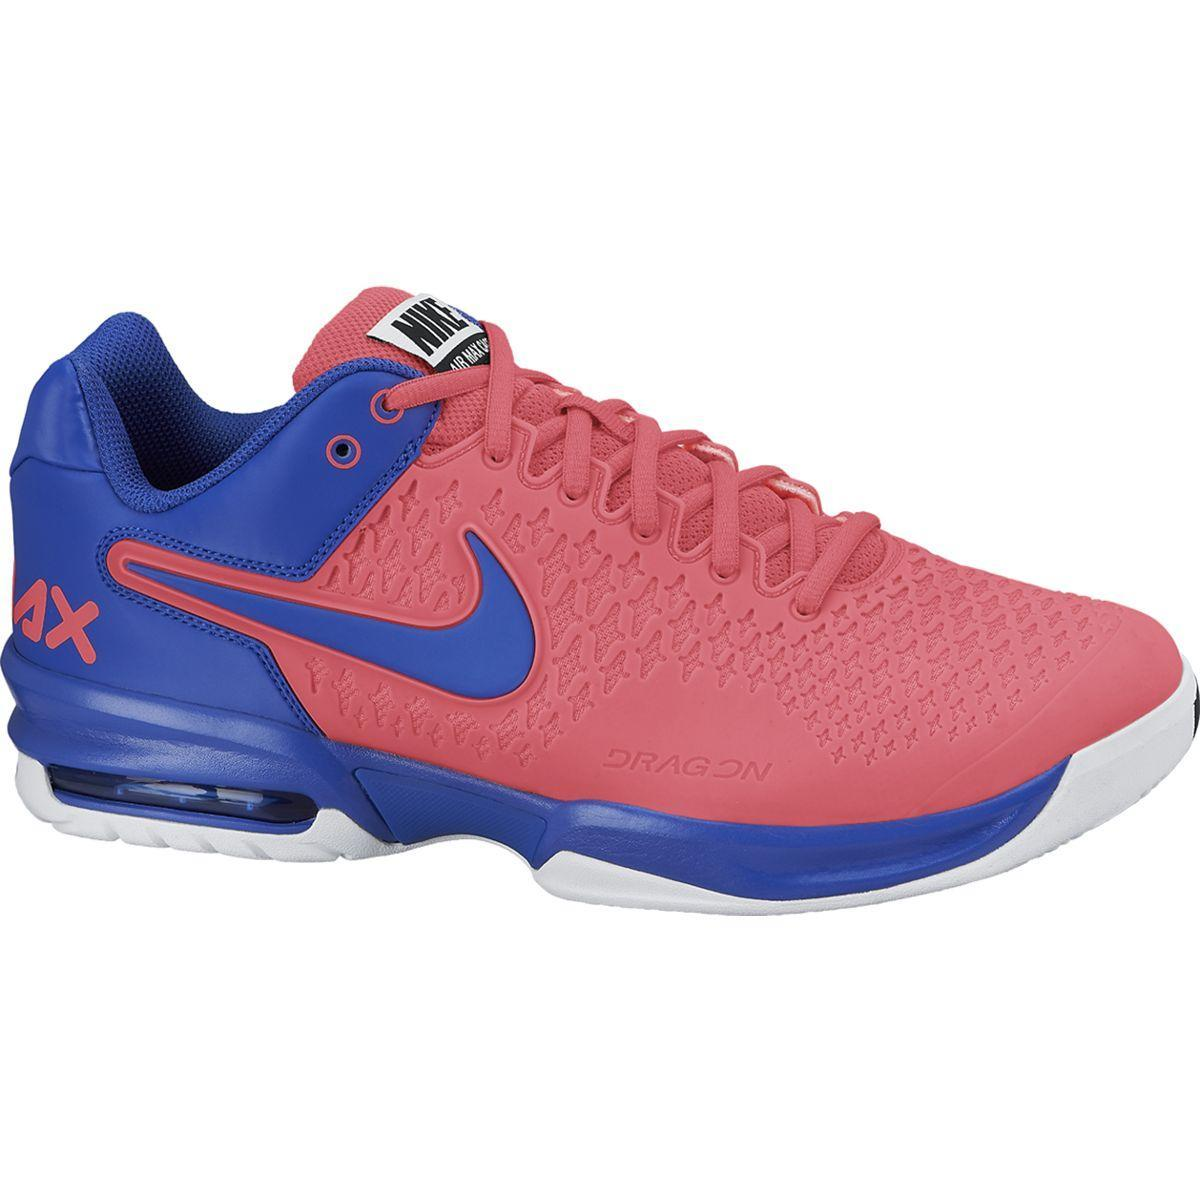 cheap for discount 32a9e a232a Nike Mens Air Max Cage Tennis Shoes - Pink Blue - Tennisnuts.com